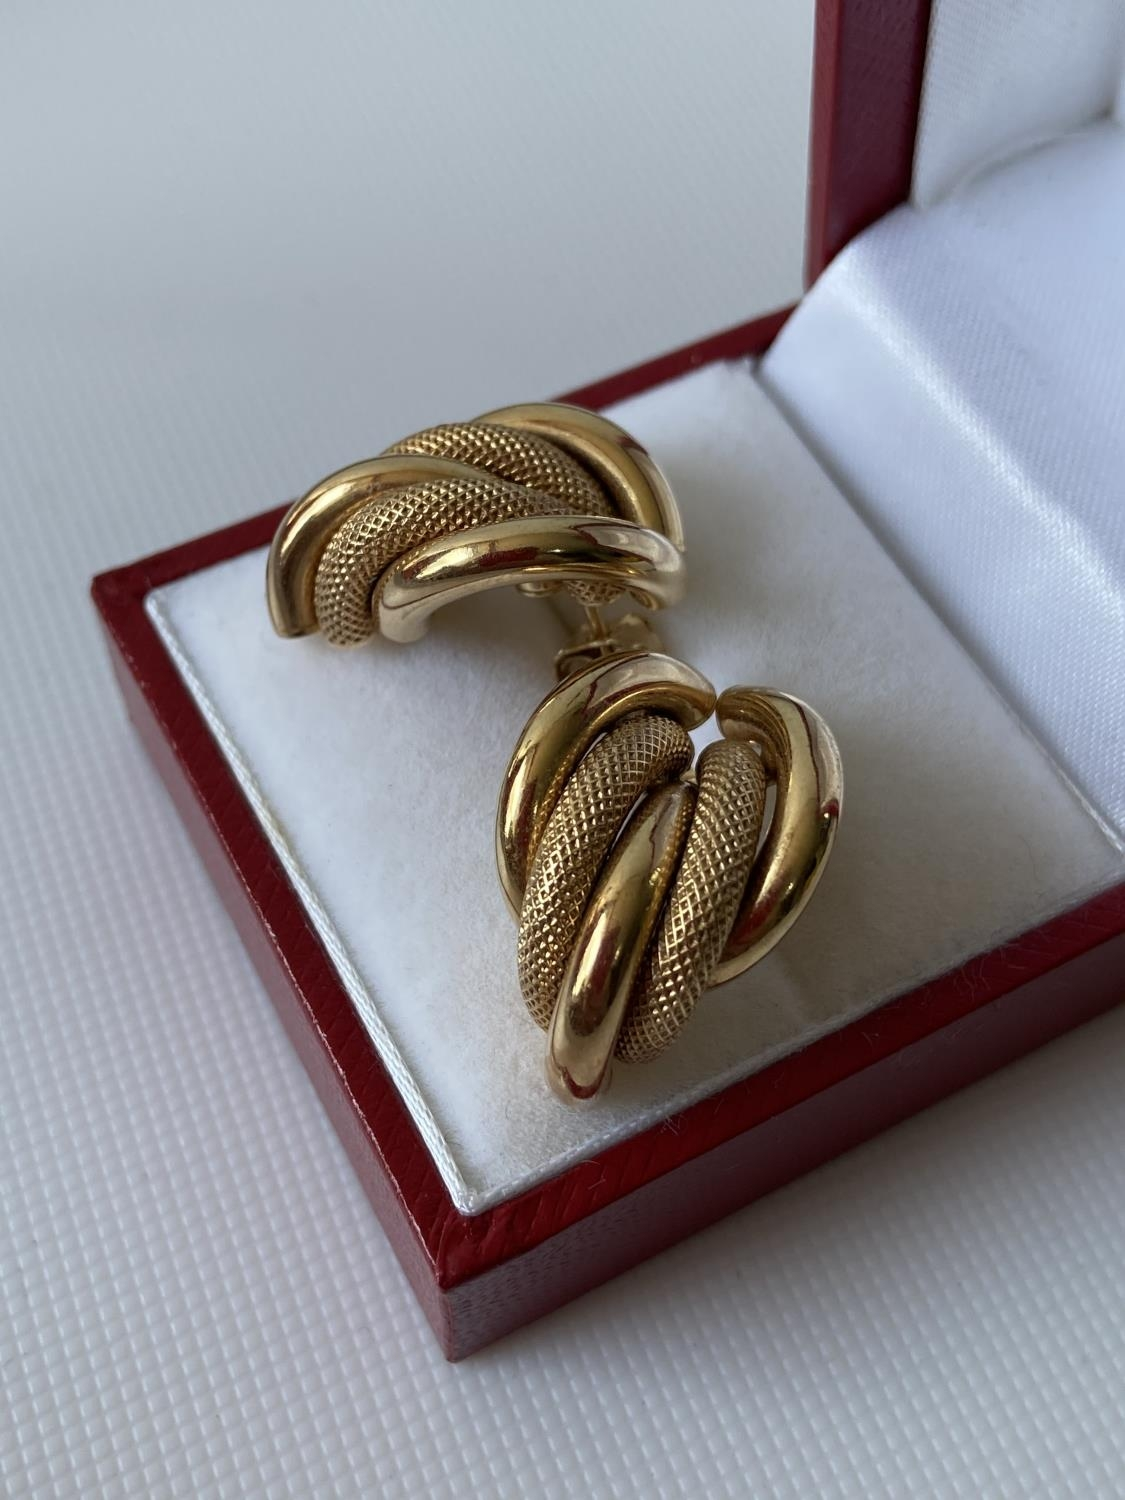 A pair of 9ct gold earrings [3.9g] - Image 5 of 6